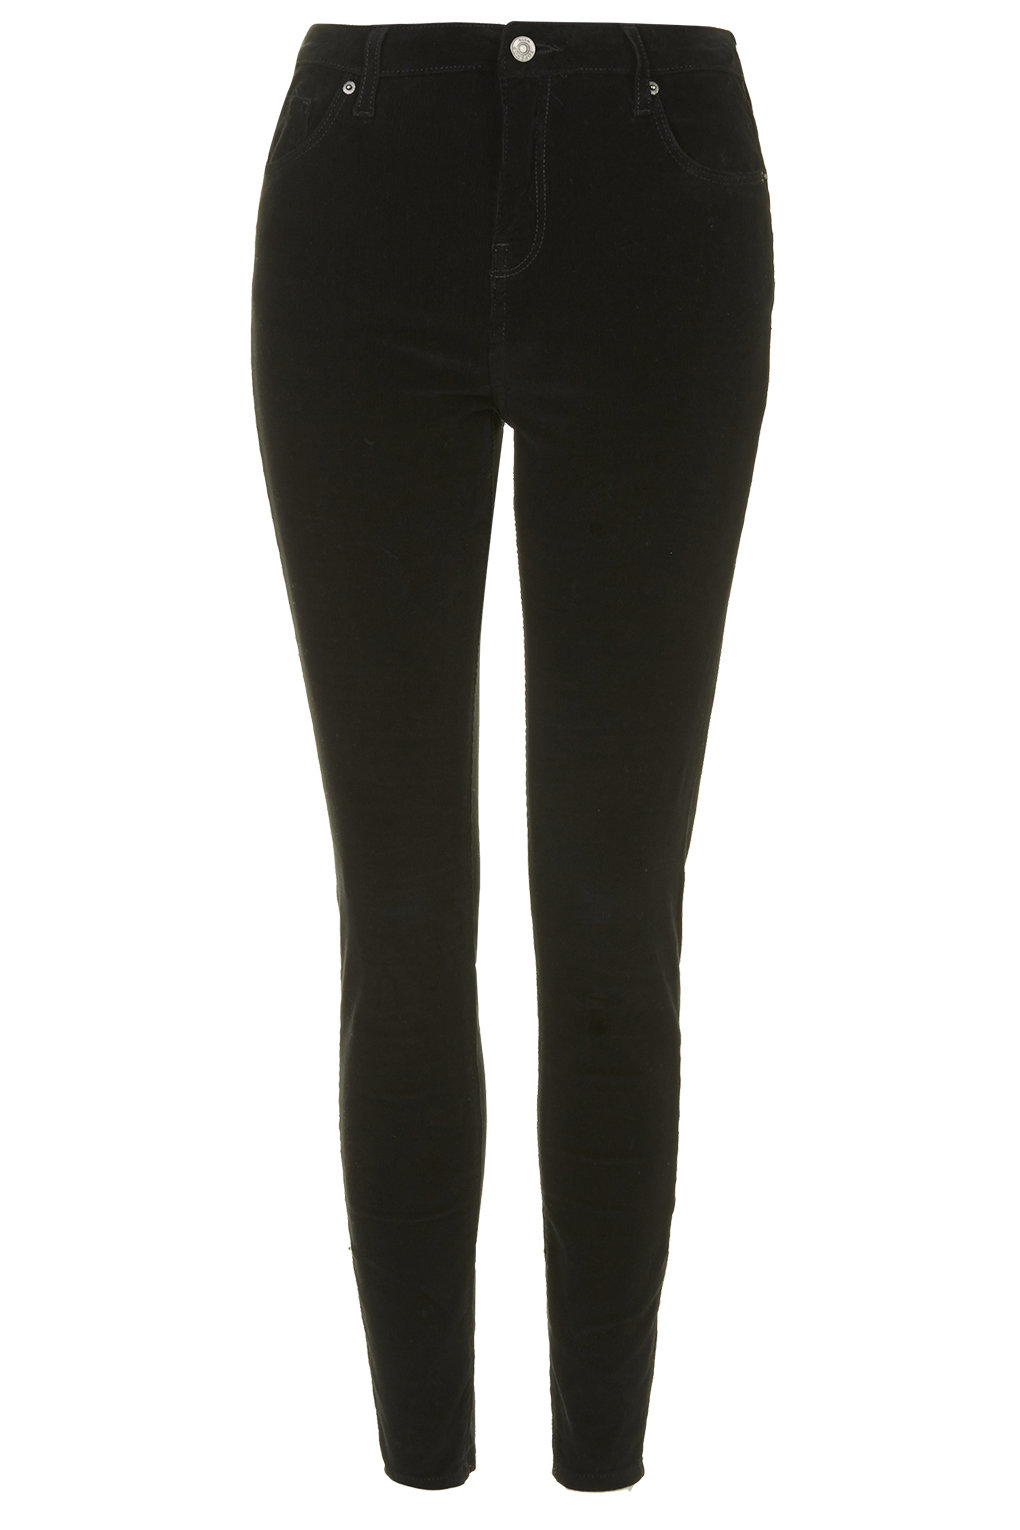 latest official store wholesale online MOTO Cord Jamie Jeans - Topshop